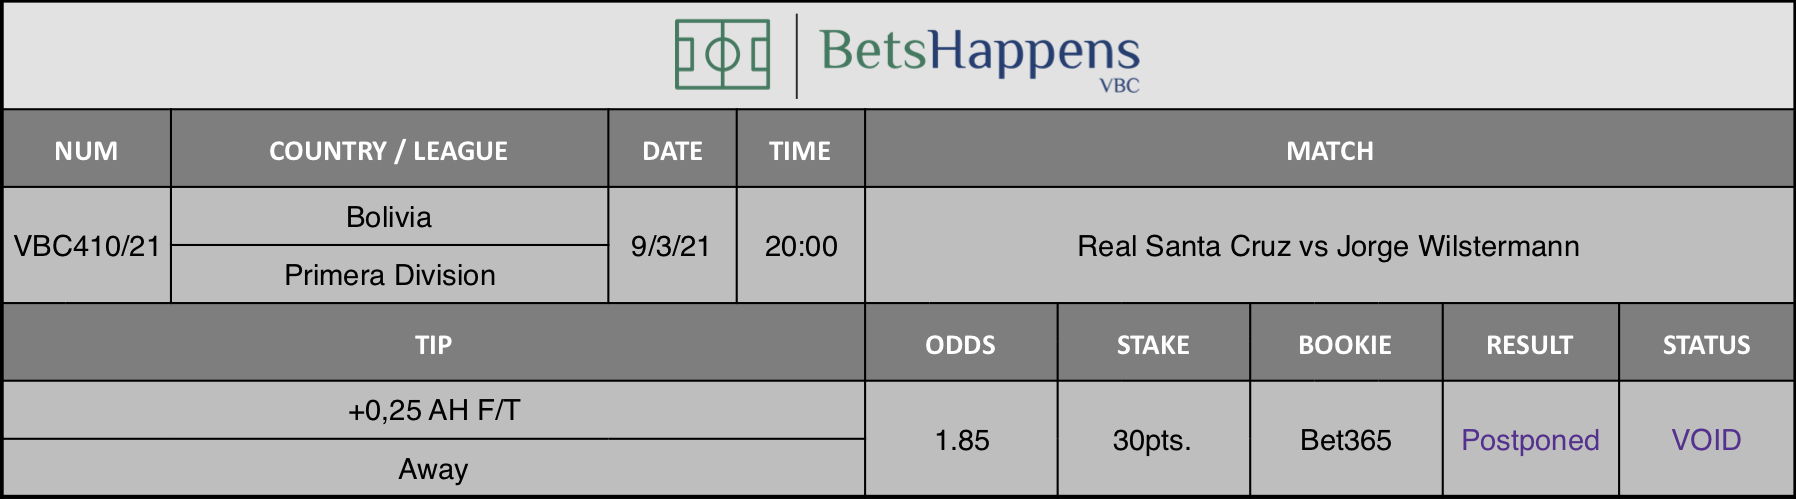 Results of our tip for the Real Santa Cruz vs Jorge Wilstermann match where +0,25 AH F/T  Away is recommended.